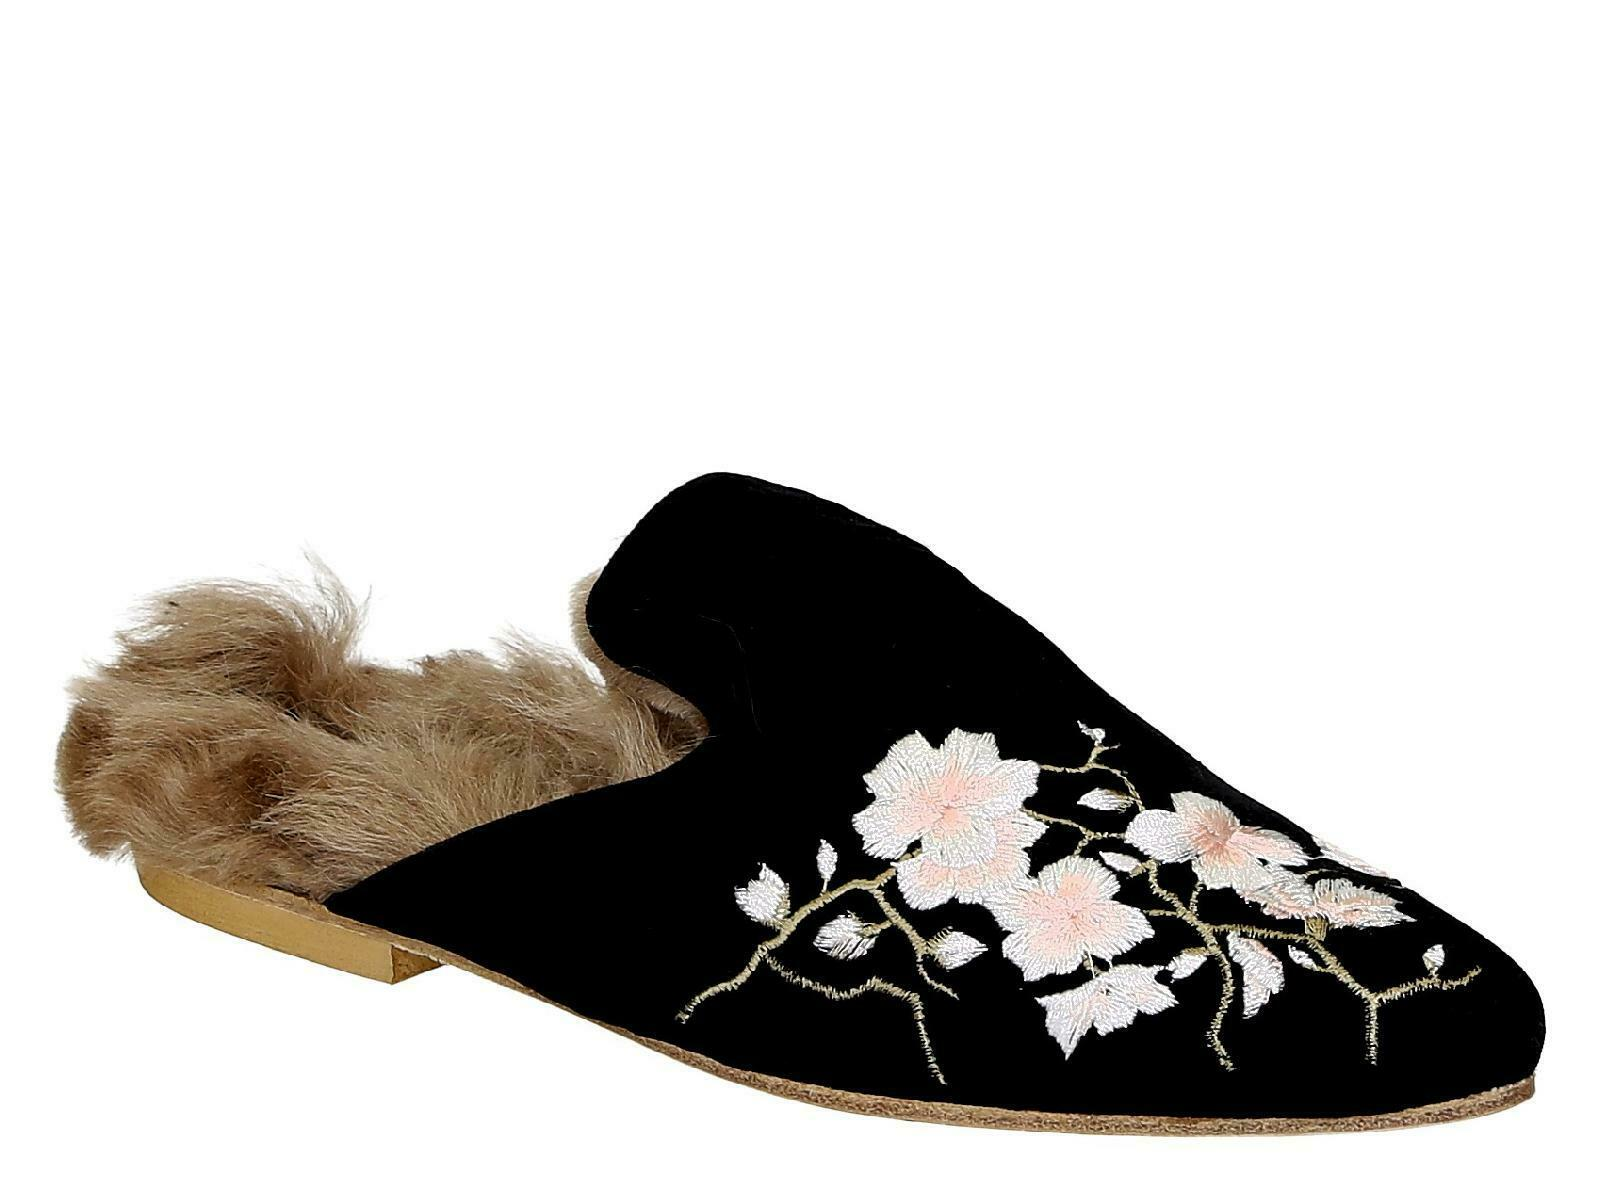 Gia Couture mujer flats fur close slippers zapatos negro velvet